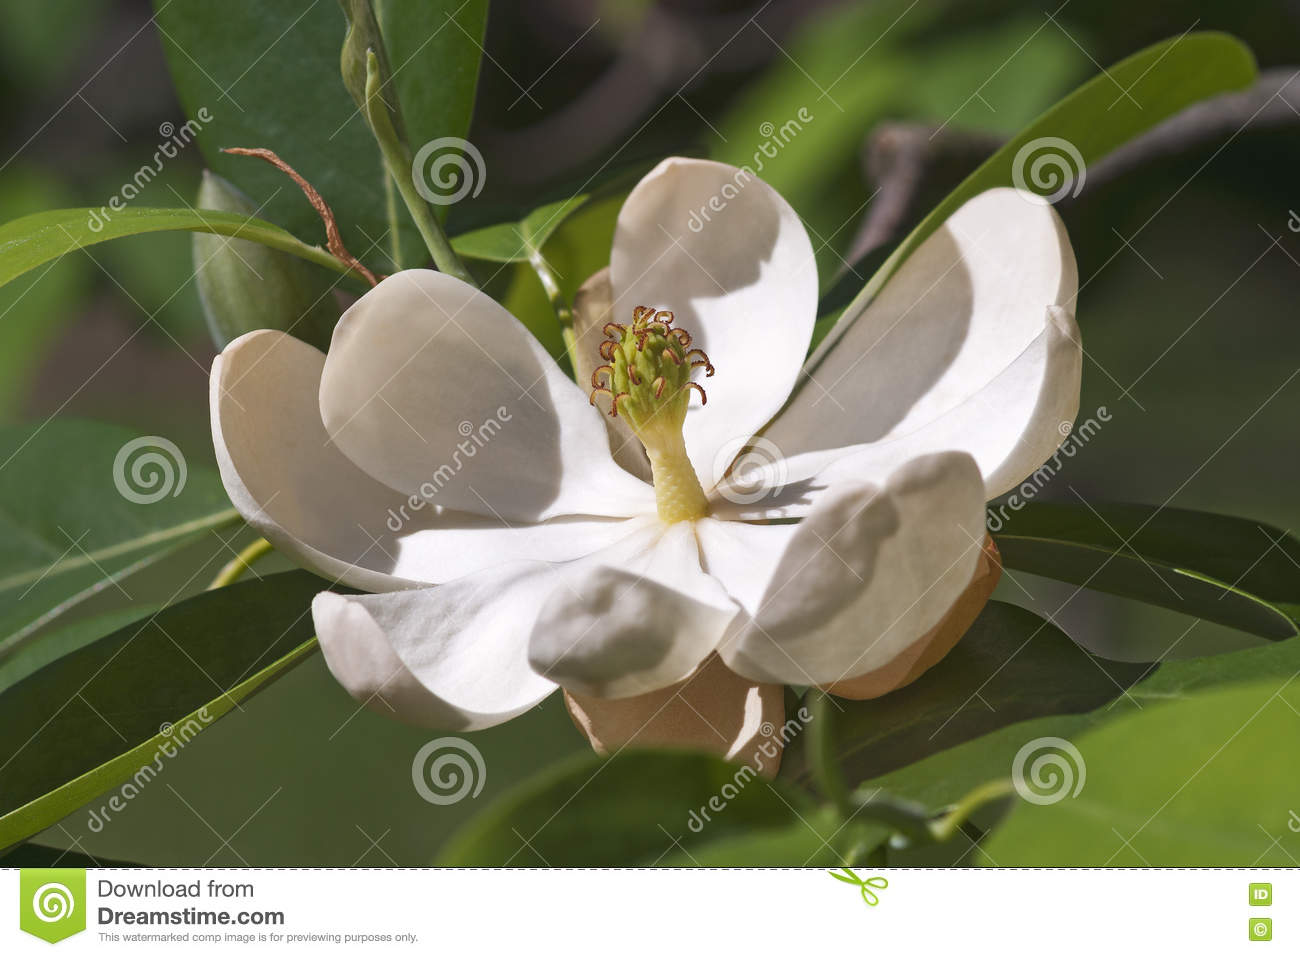 Sweetbay Magnolia Flower Stock Photo Image Of Laurel 72985104